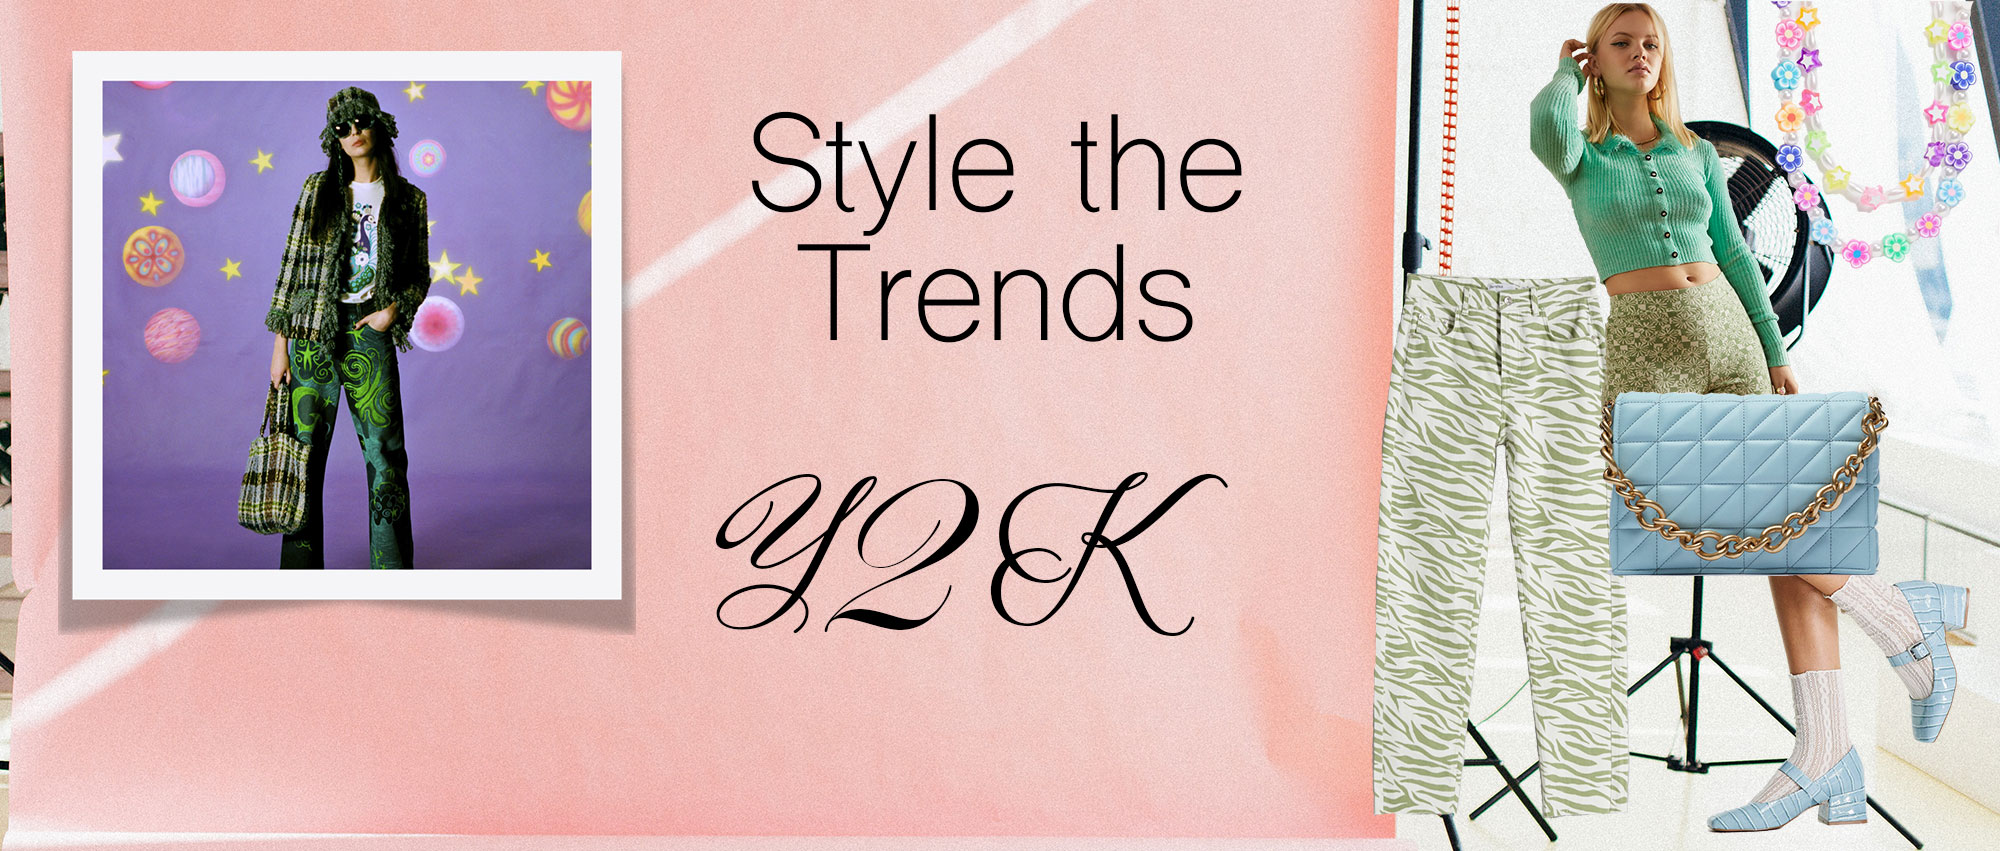 Style-the-Trends_Y2K_header